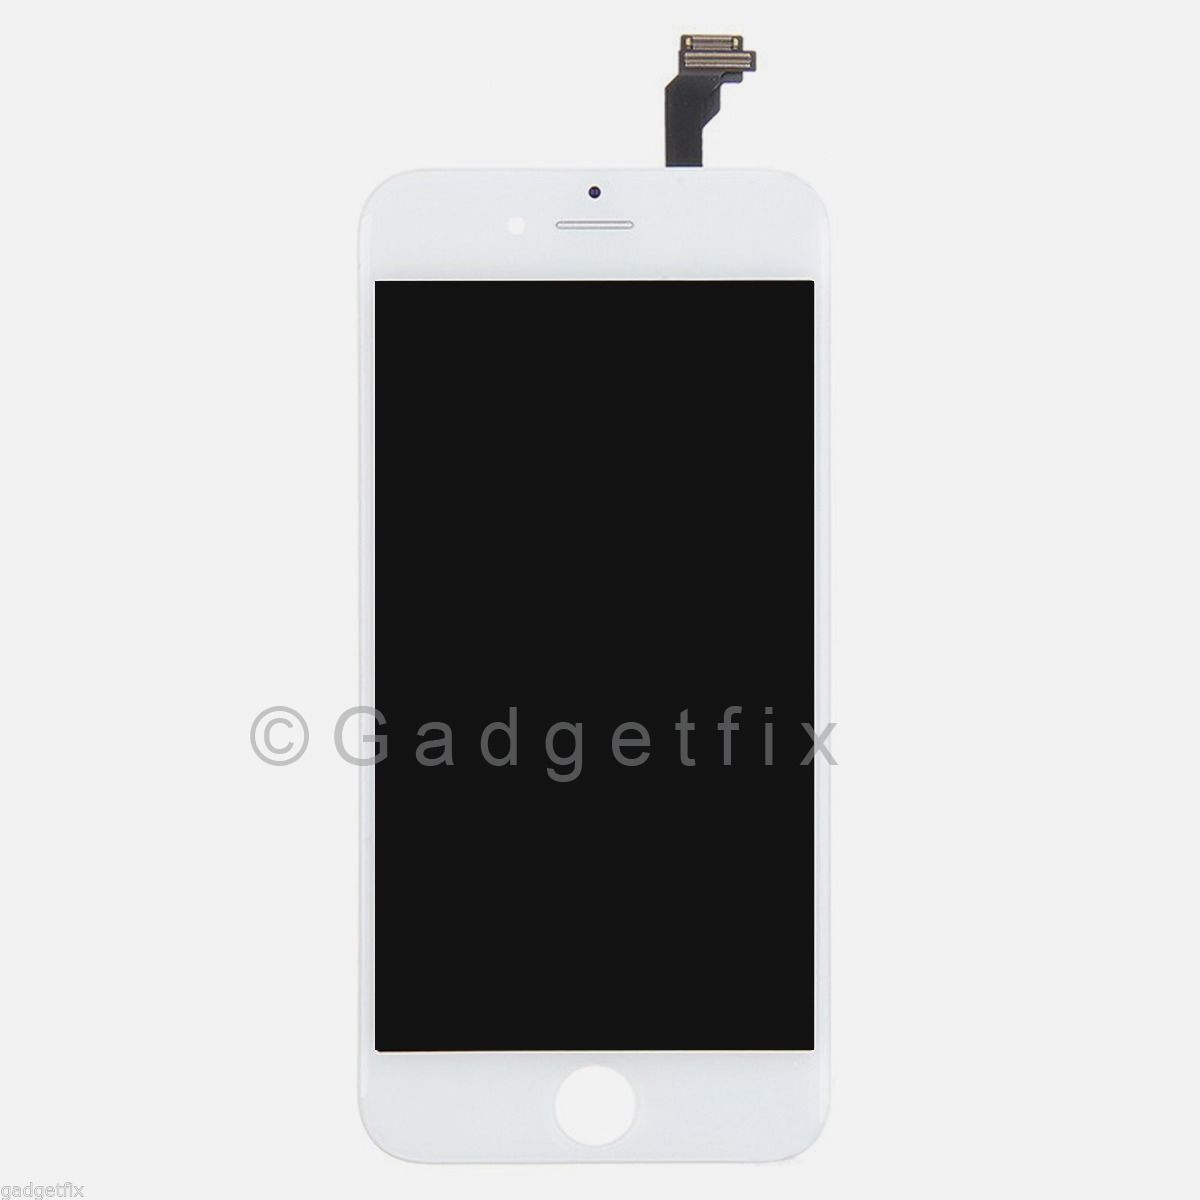 White LCD Screen Display + Touch Screen Digitizer + Frame for iPhone 6 PLUS 5.5